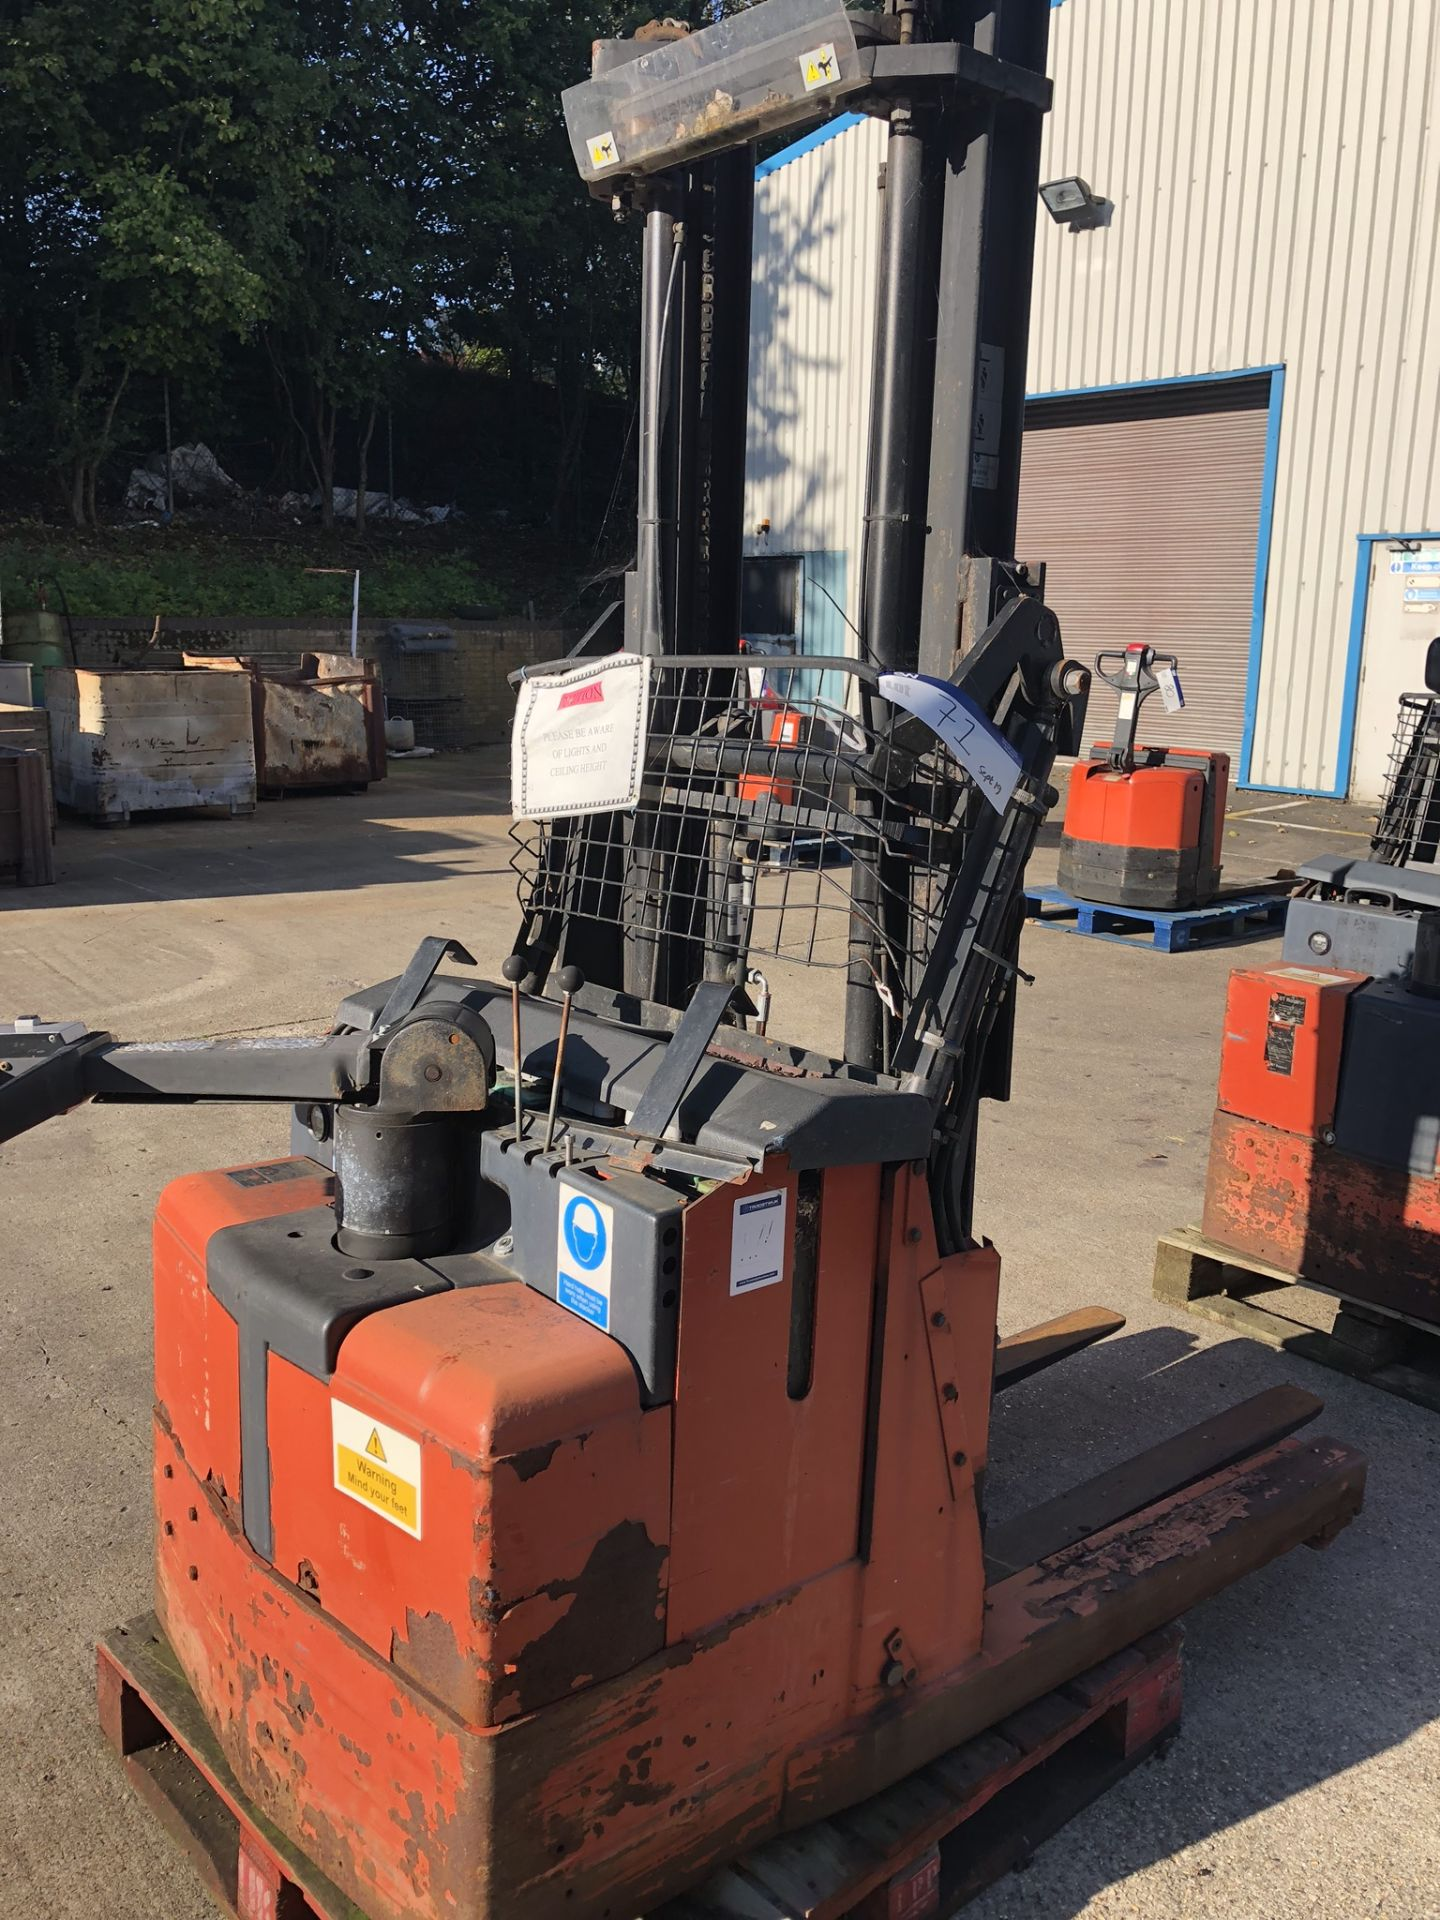 Lot 71 - BT LSR 1200/3 1200kg Reach Truck, serial no. 933158, year of manufacture 2000, lift out charge - £